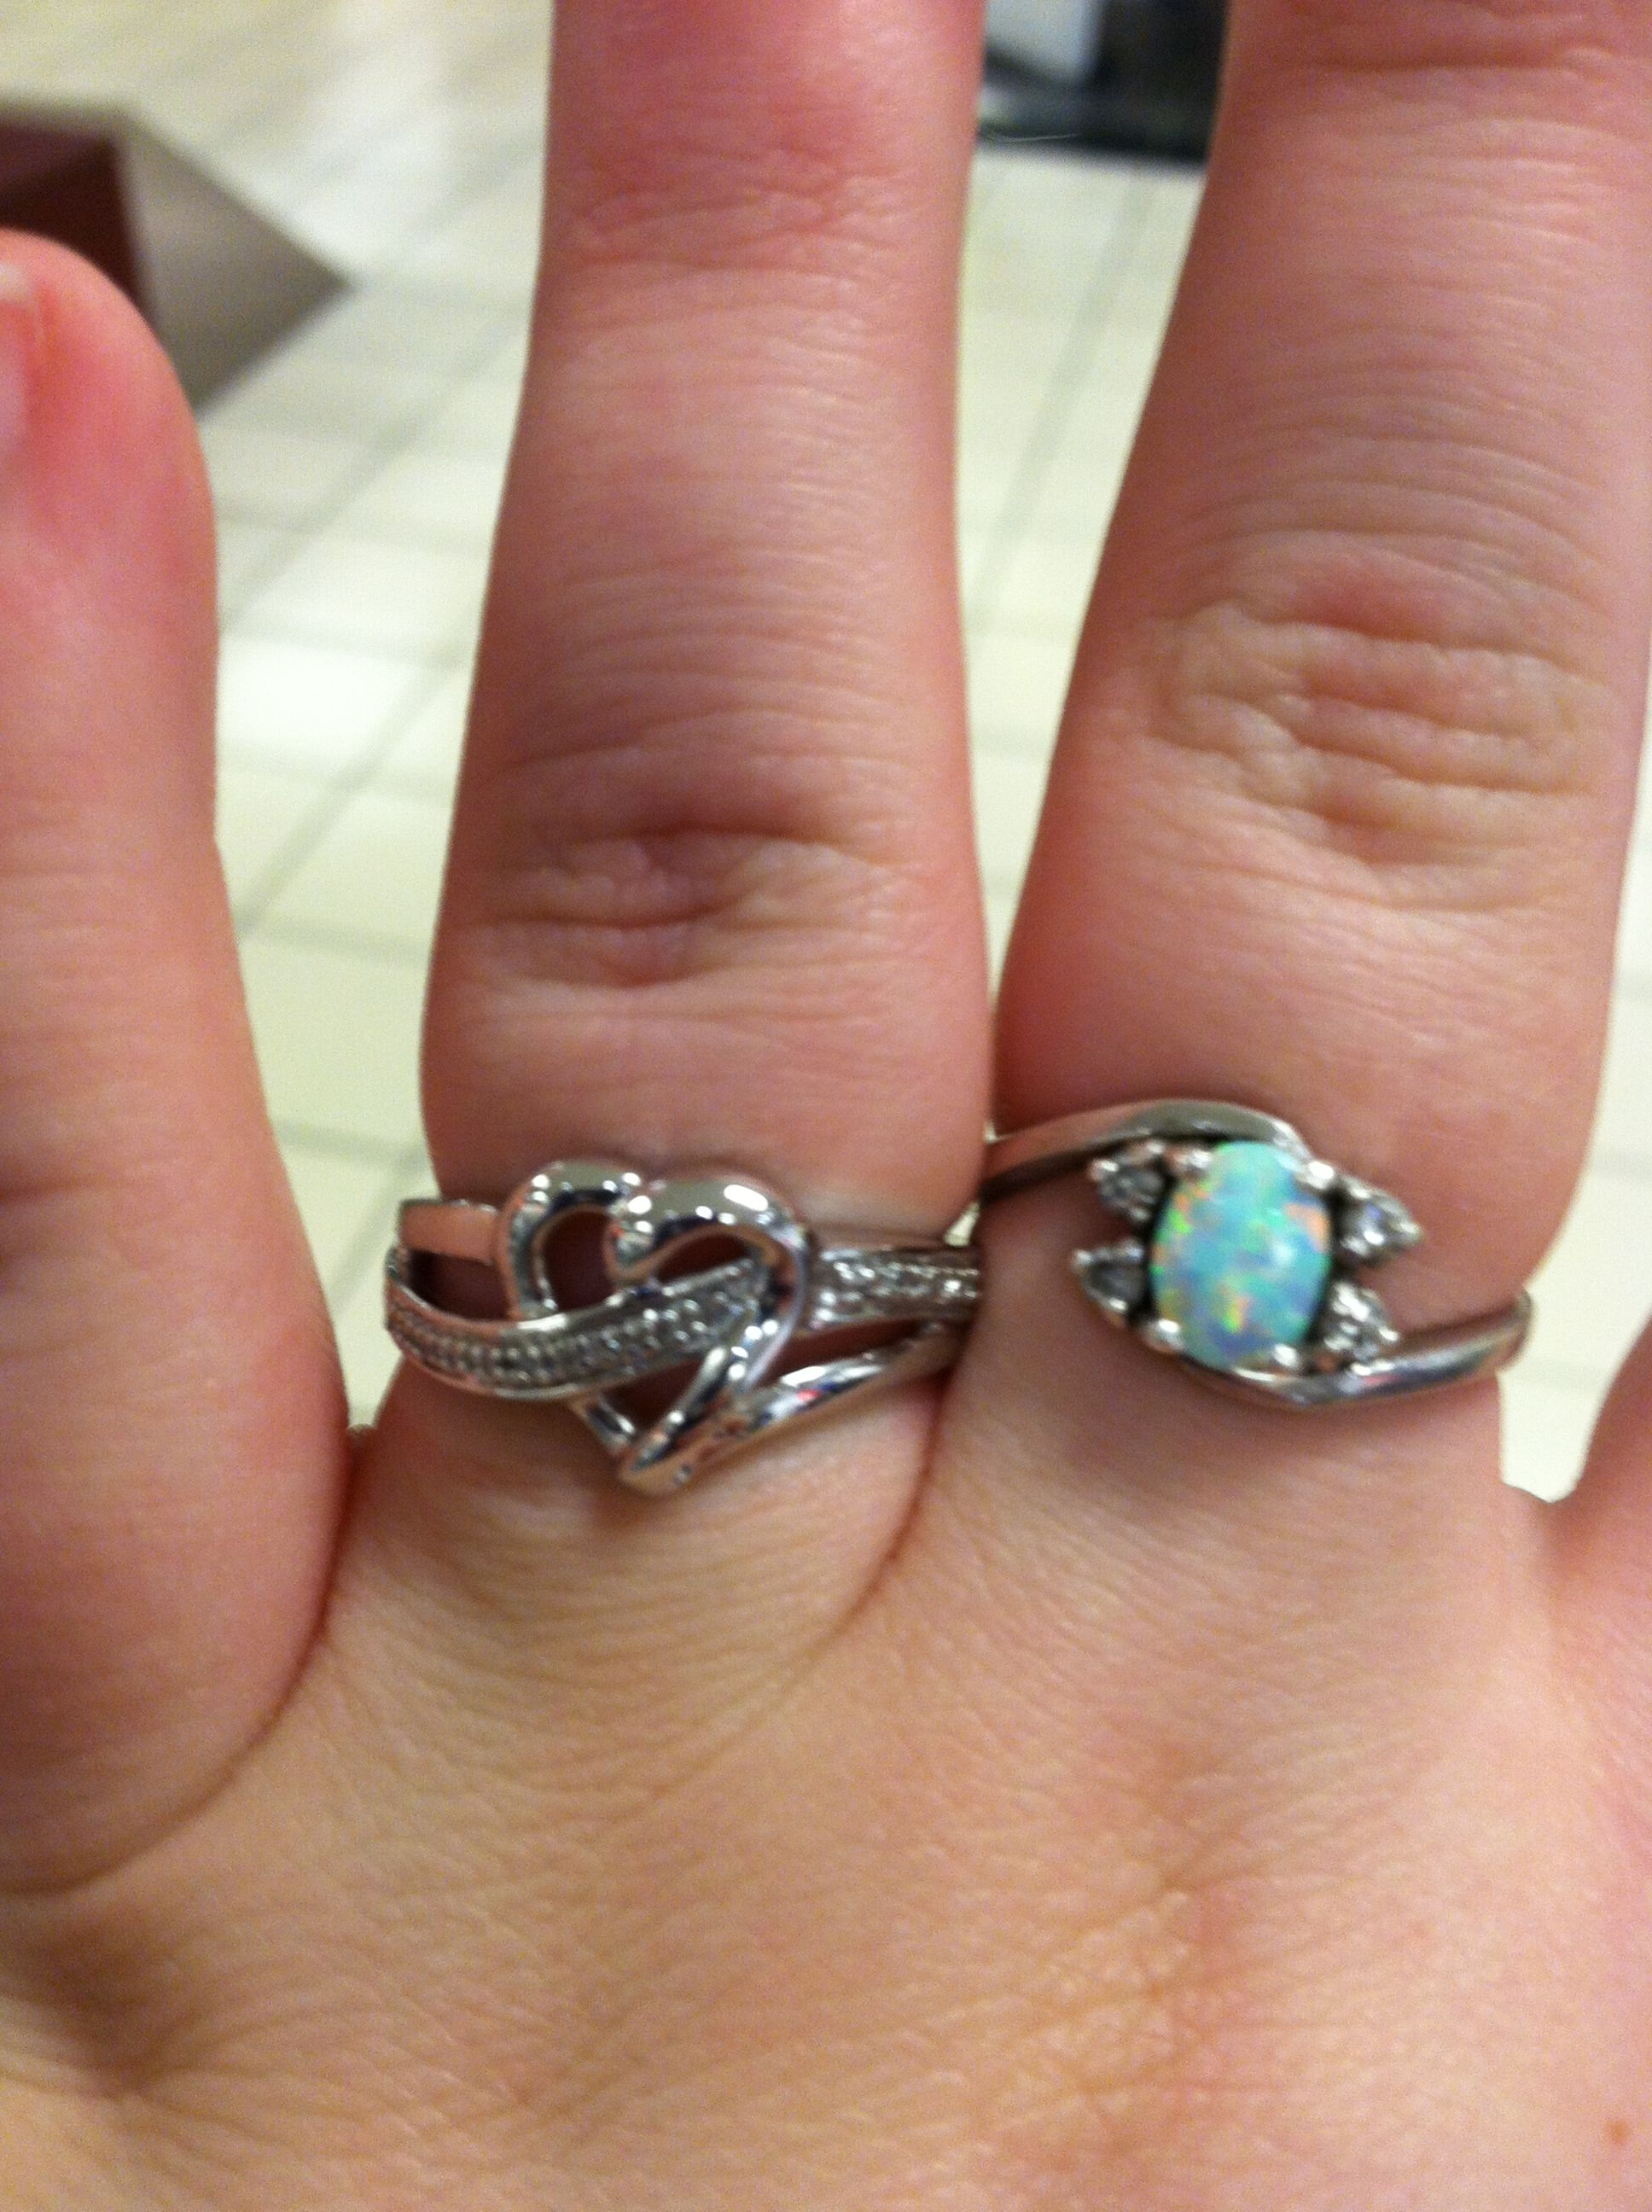 My beautiful promise ring (: